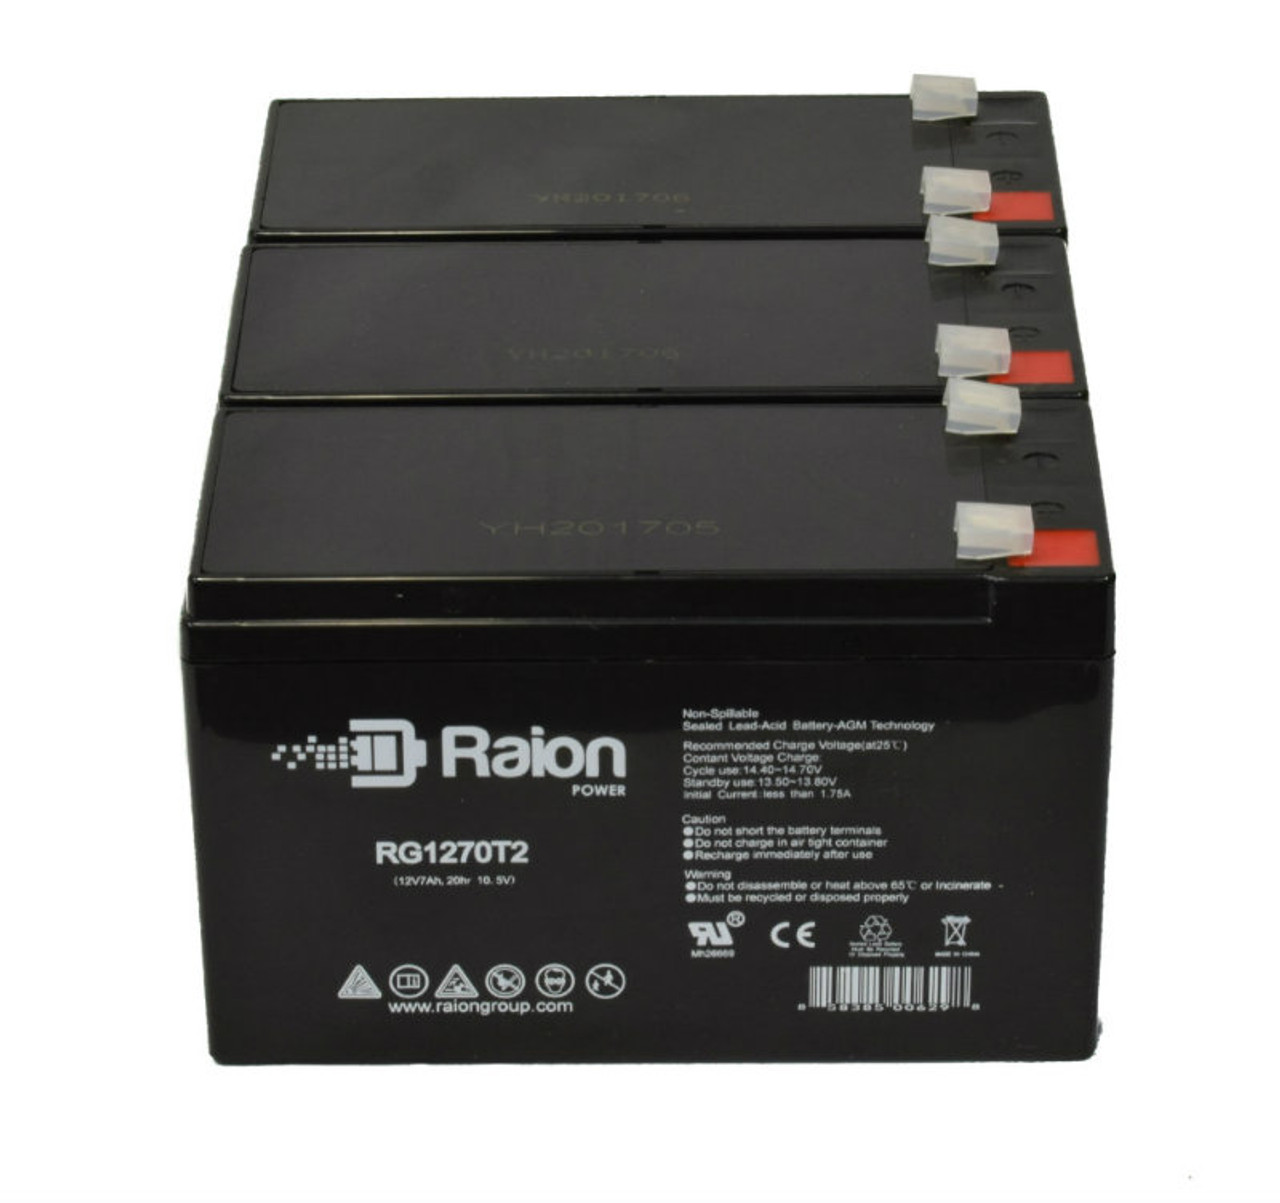 Raion Power RG1270T1 Replacement Battery Pack For Newmox FNC-1272 - (3 Pack)